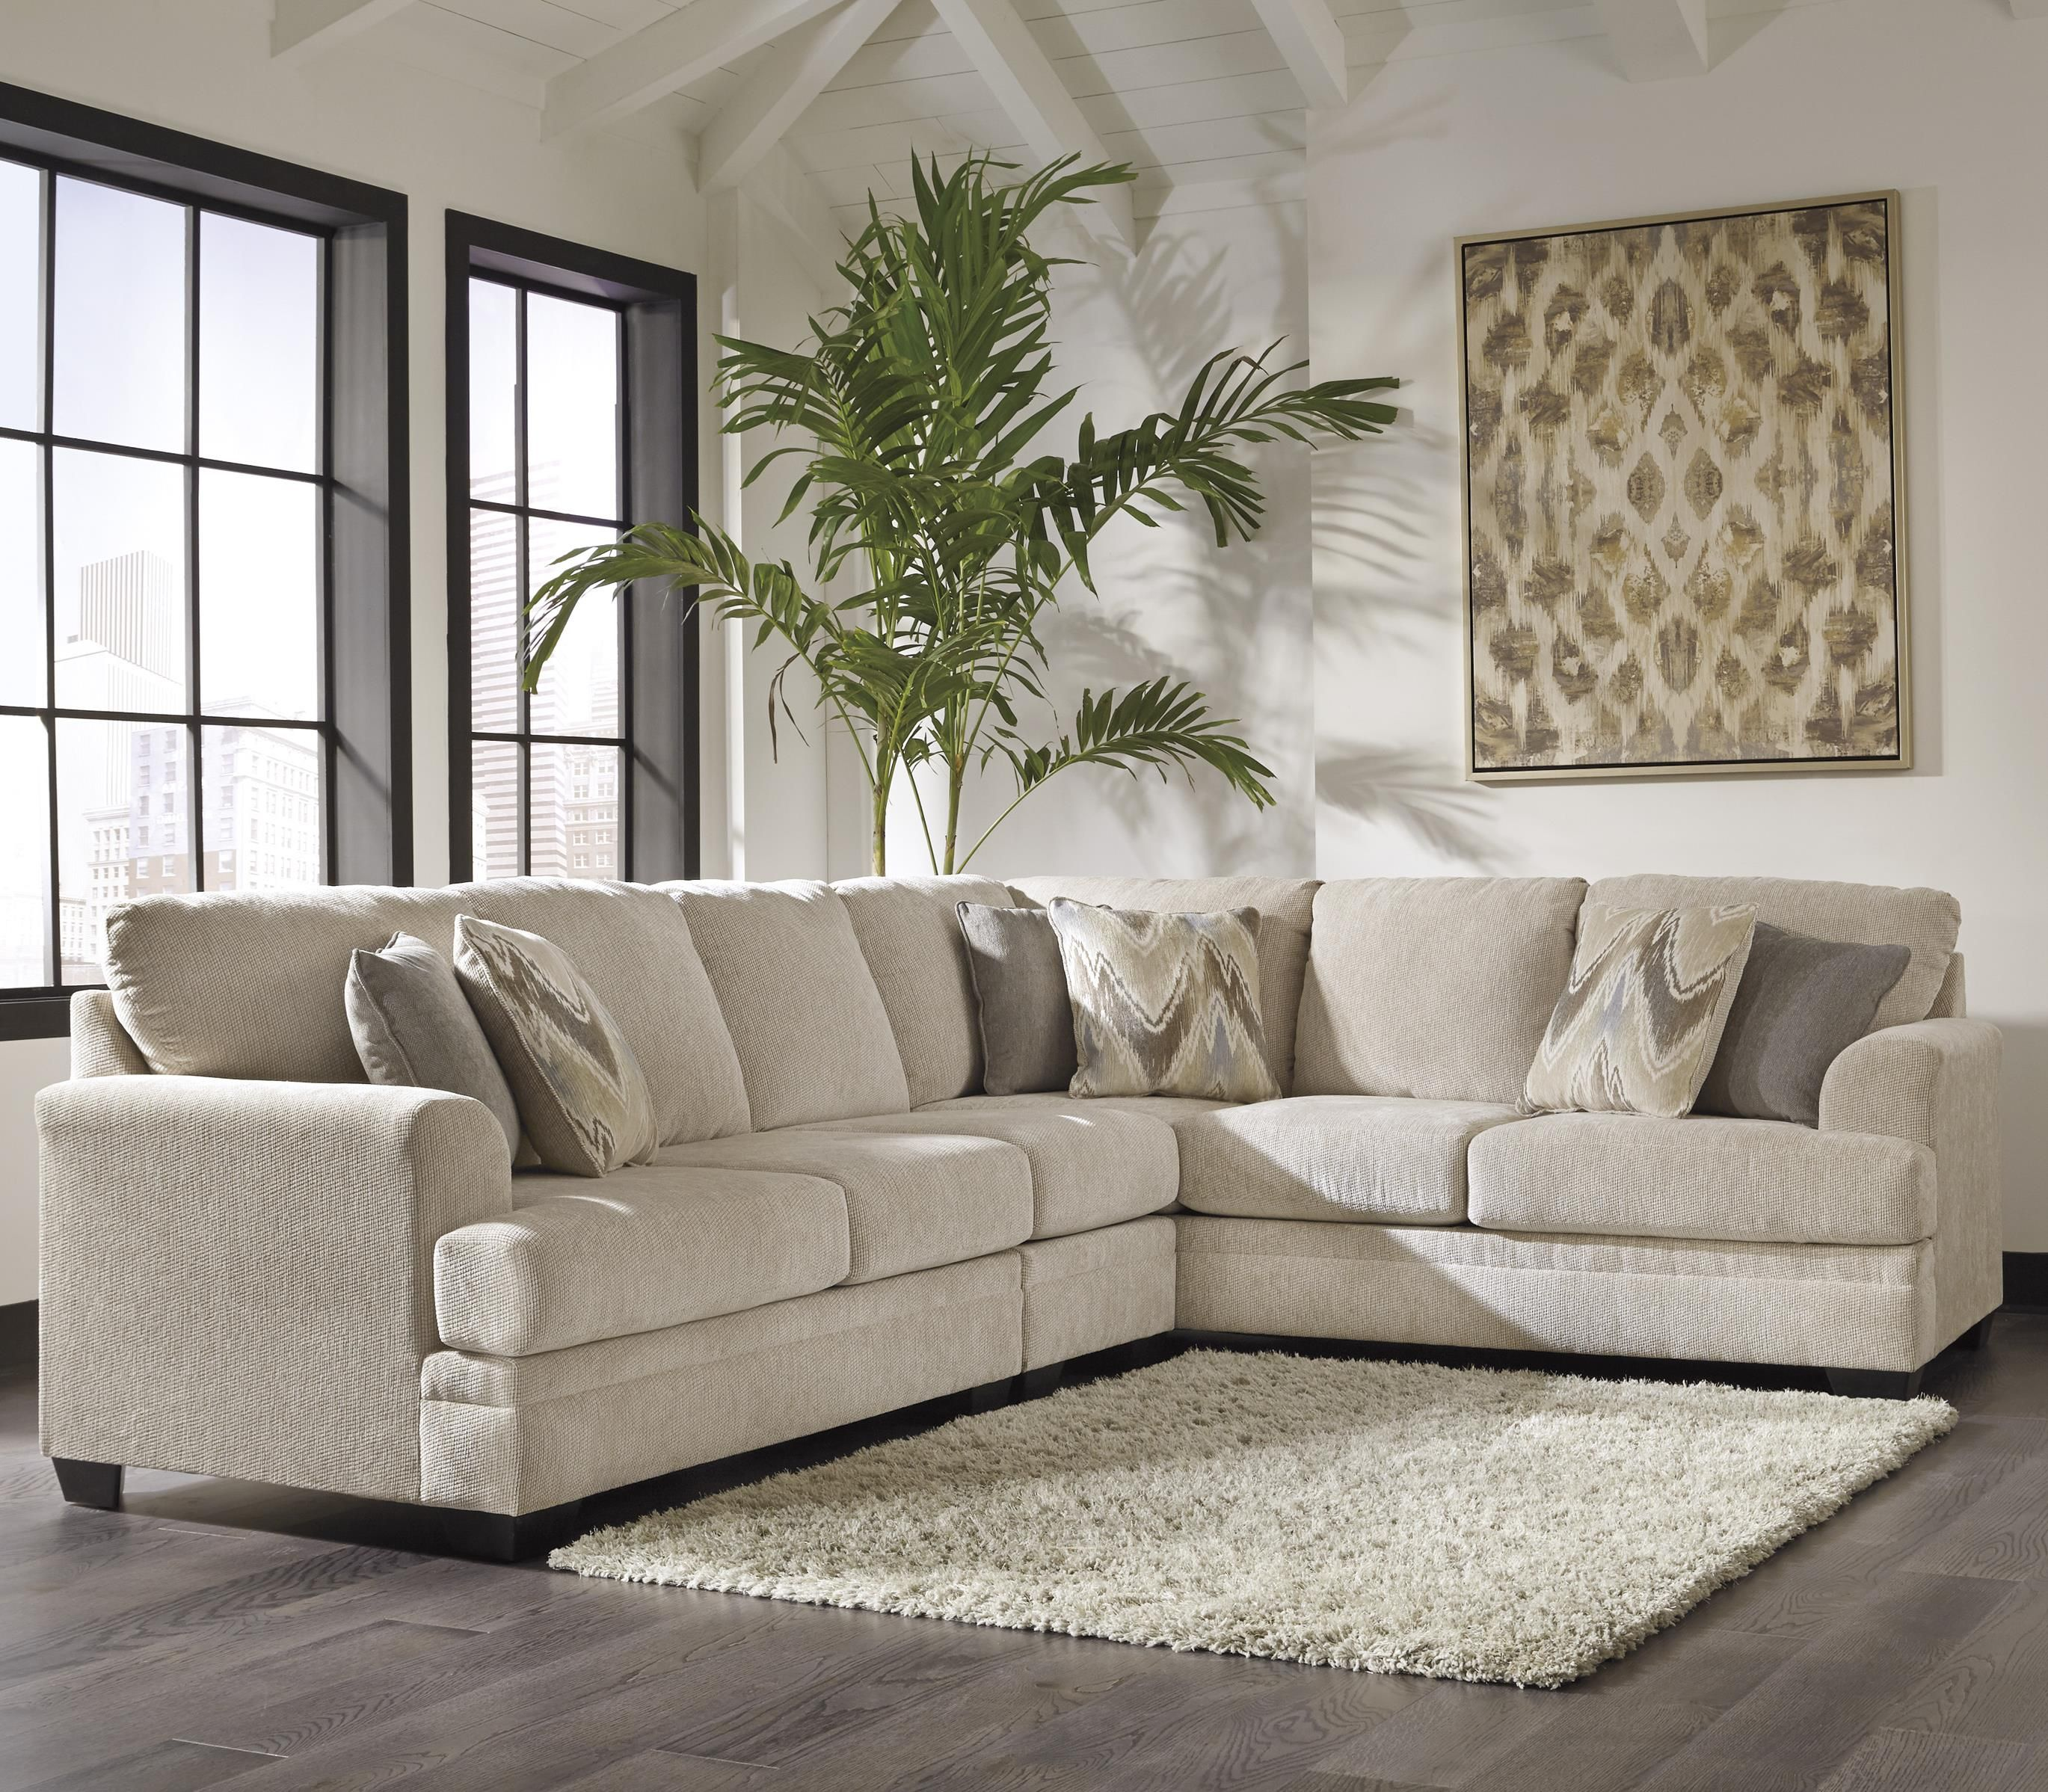 Ameer Contemporary Sectional by Benchcraft at Wayside Furniture : marlo furniture sectional sofa - Sectionals, Sofas & Couches